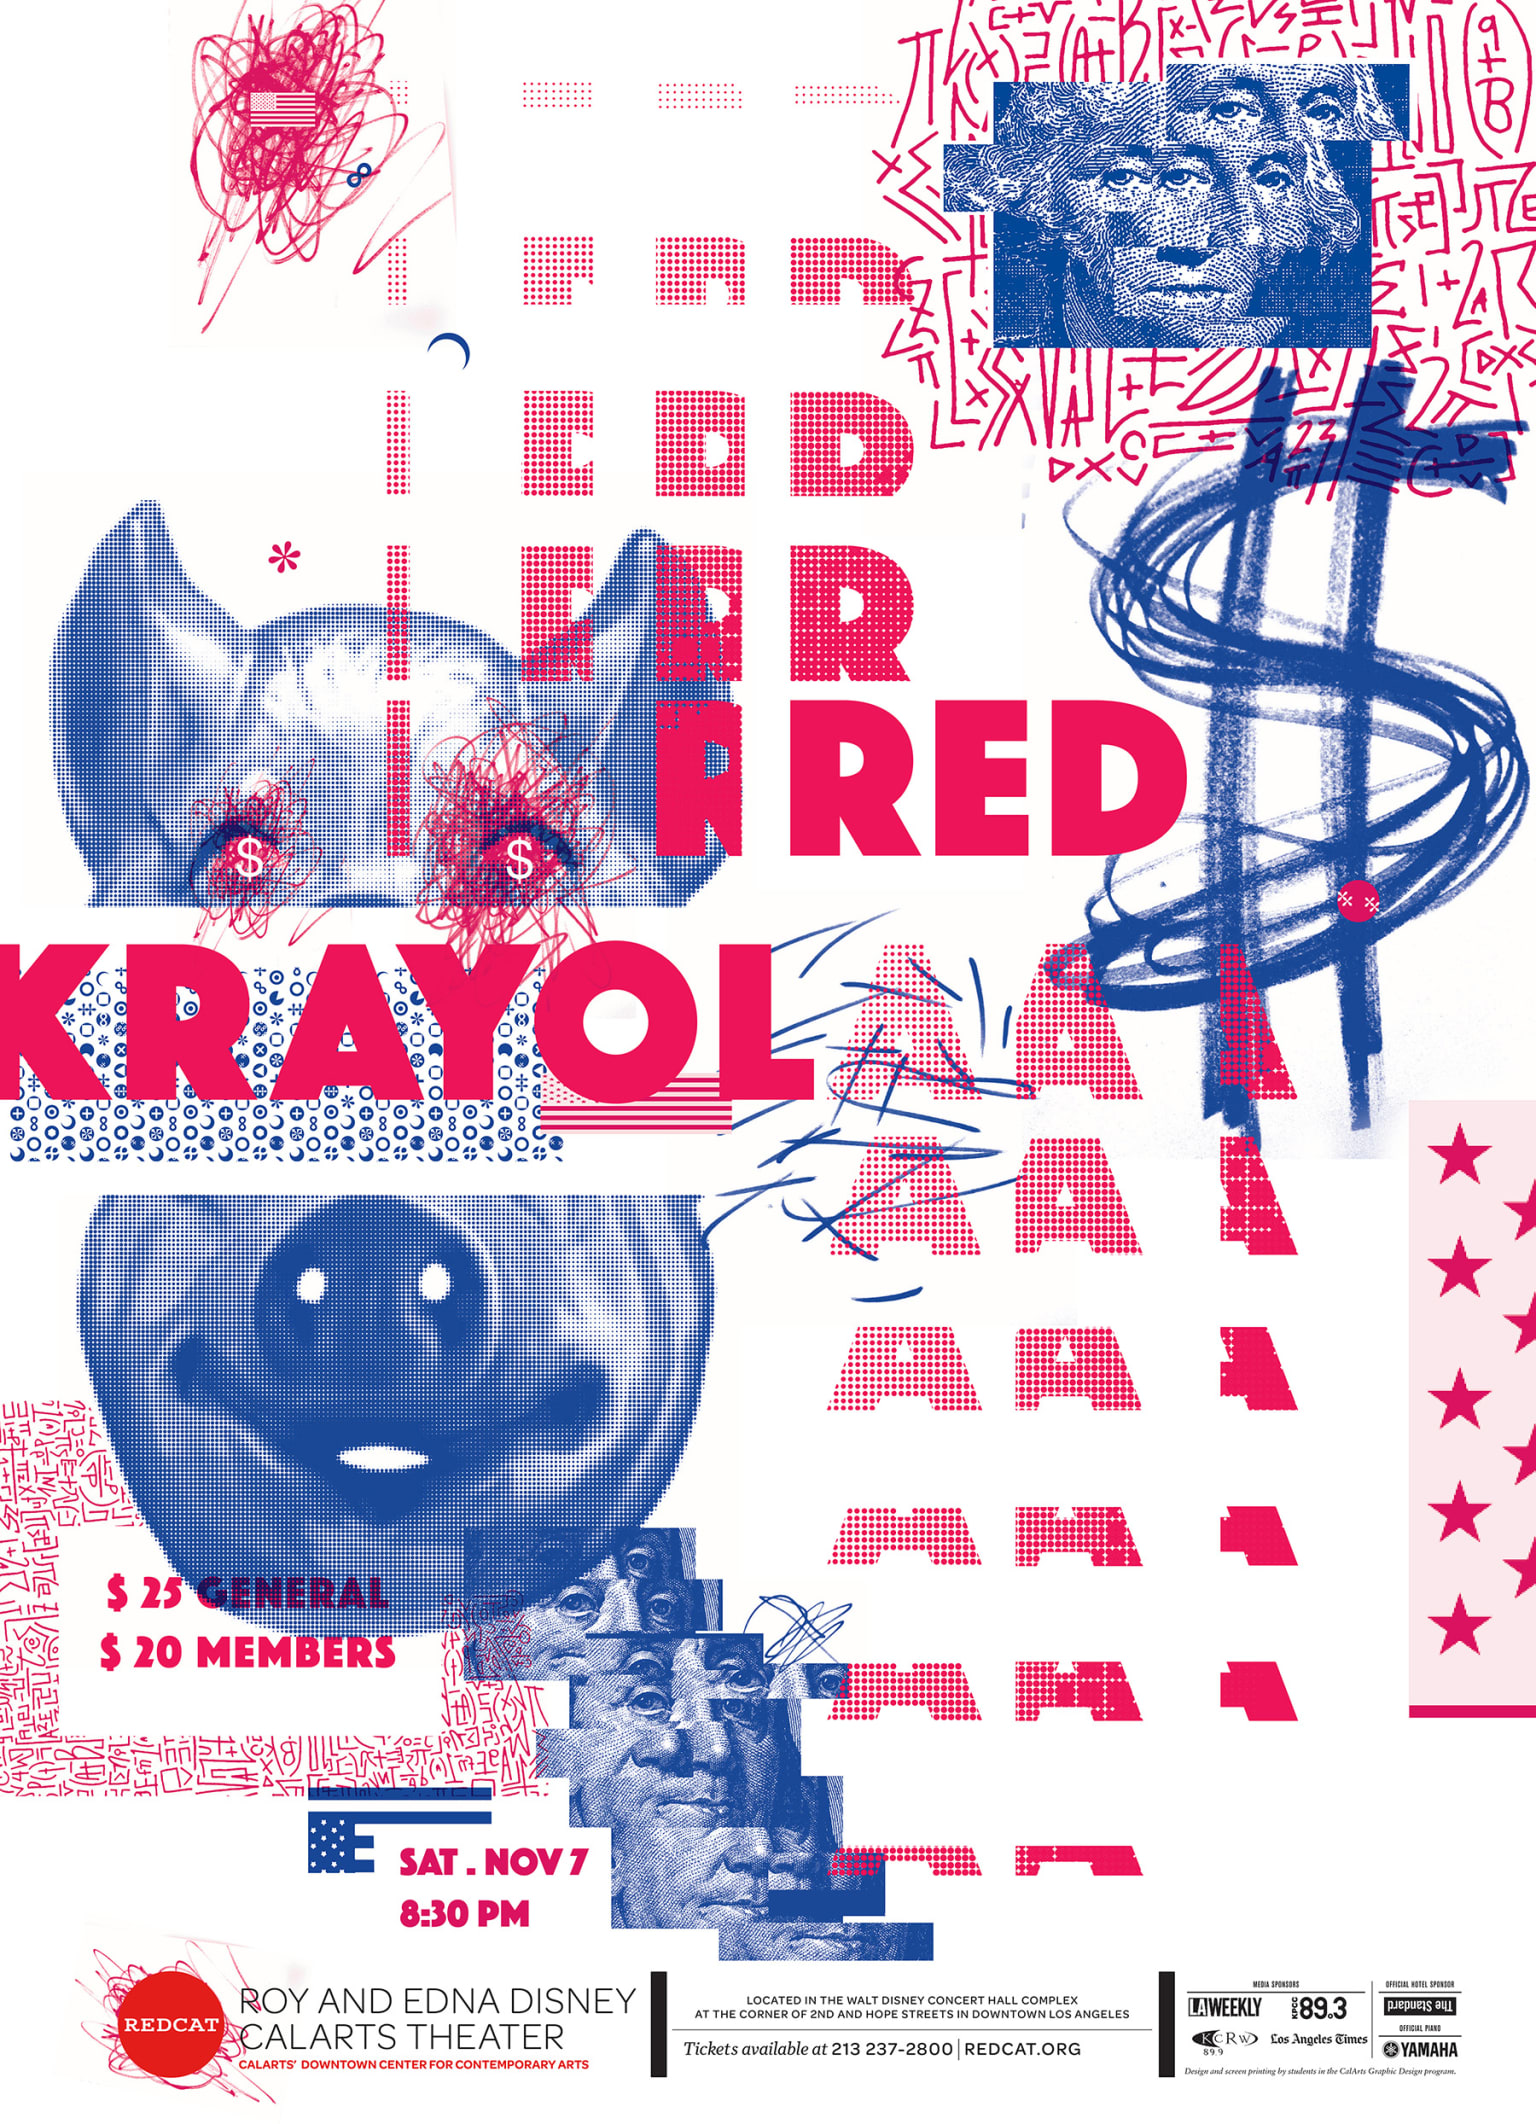 REDCAT Posters